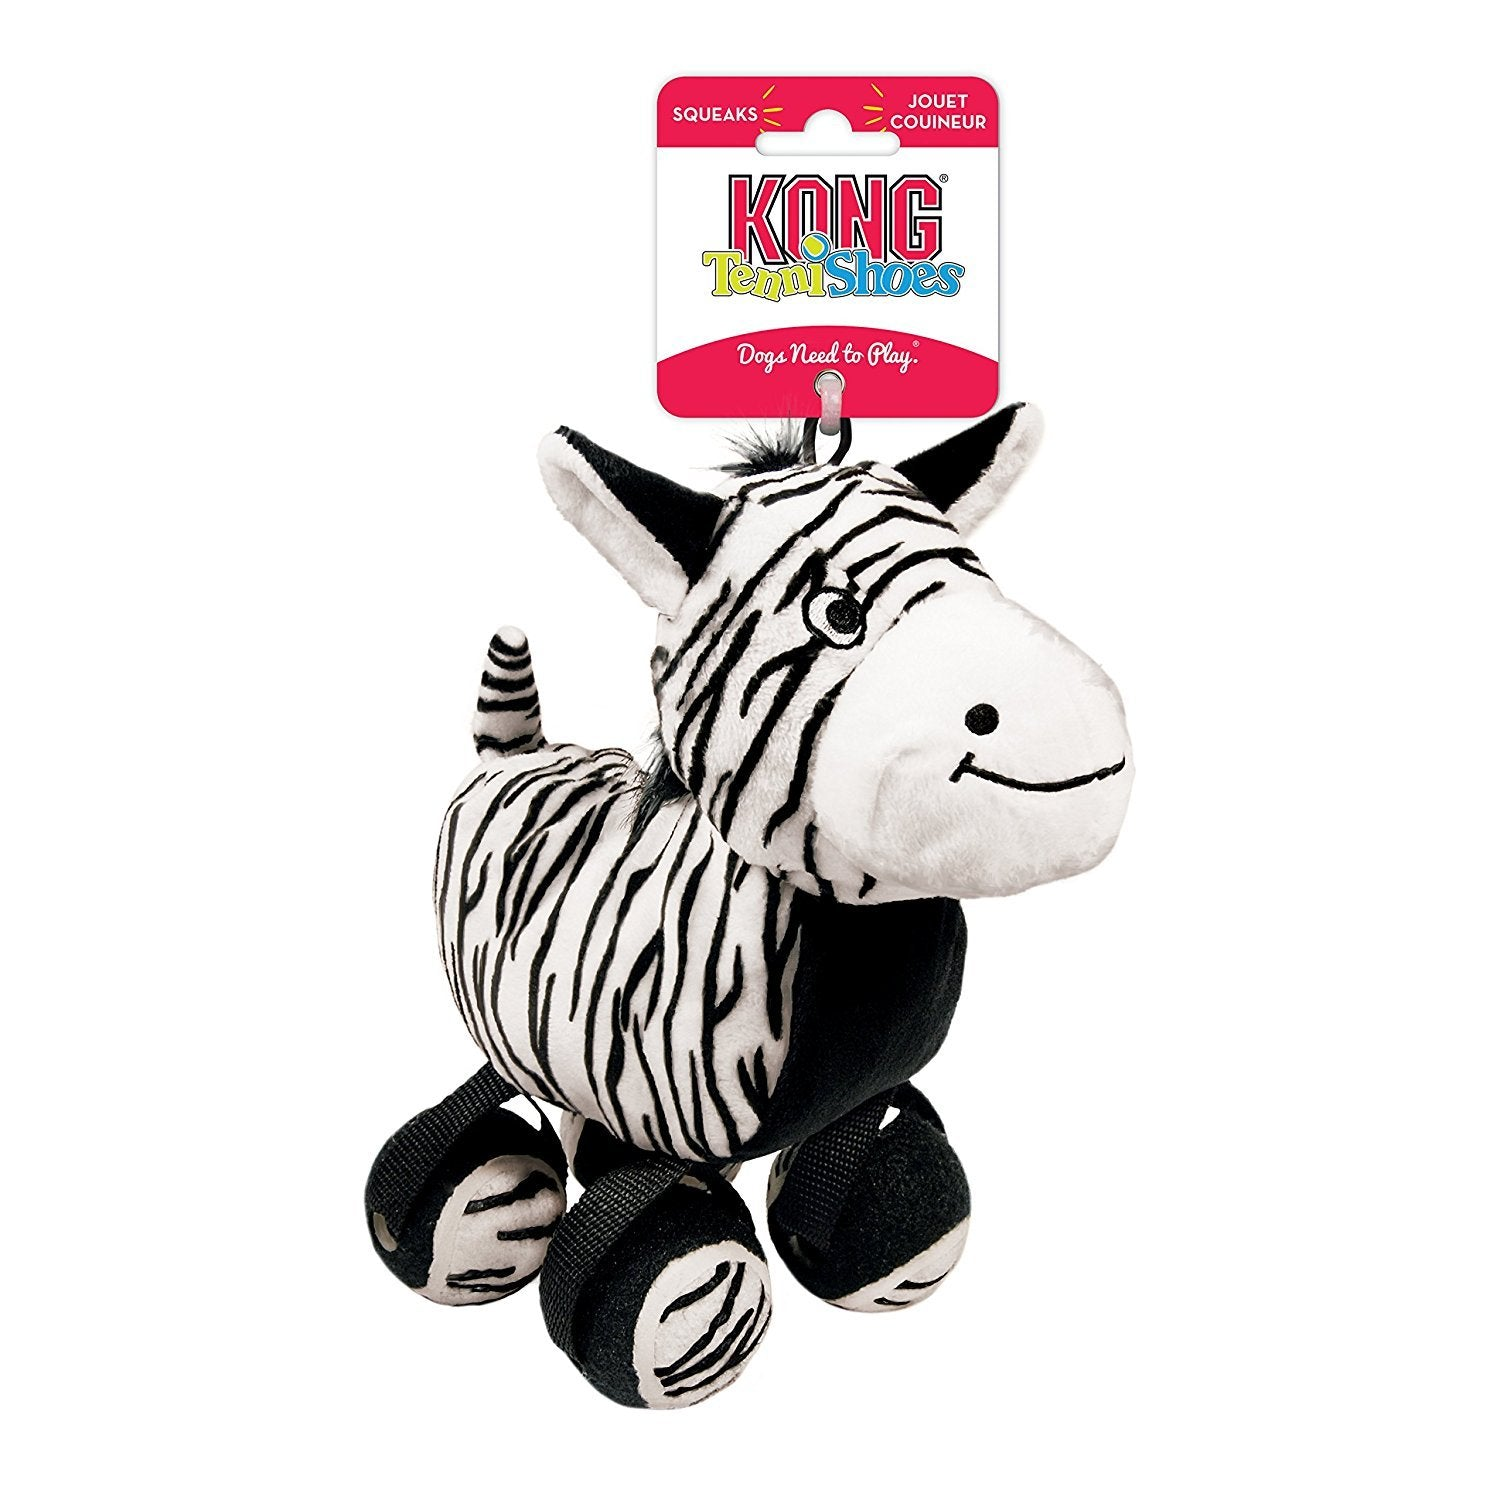 Kong TenniShoes Zebra Squeaky Small Dog Toy - pet-club-india